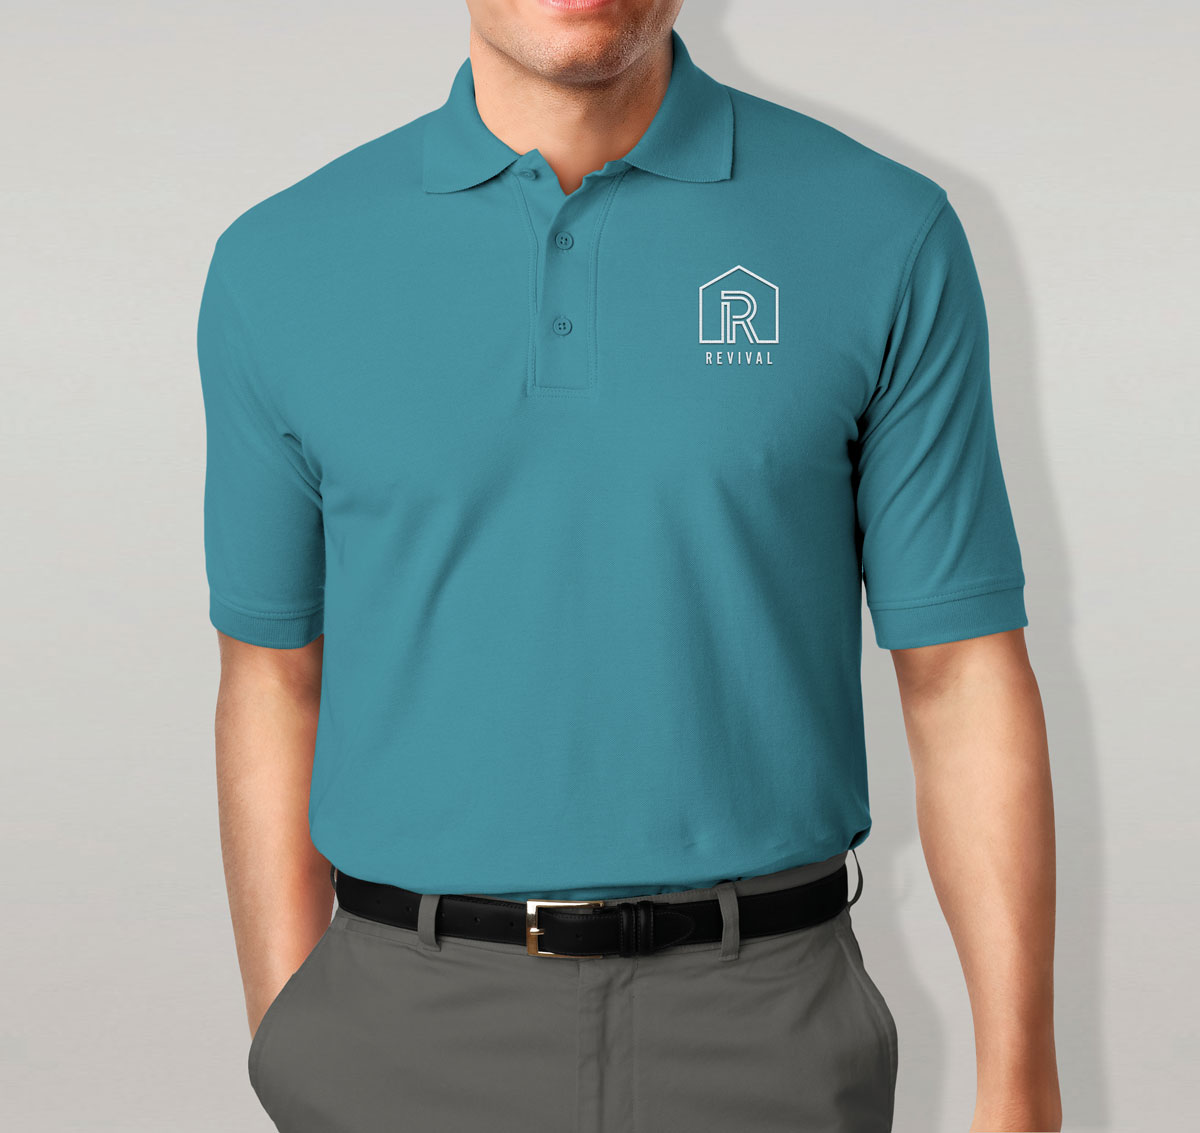 Revival polo tee